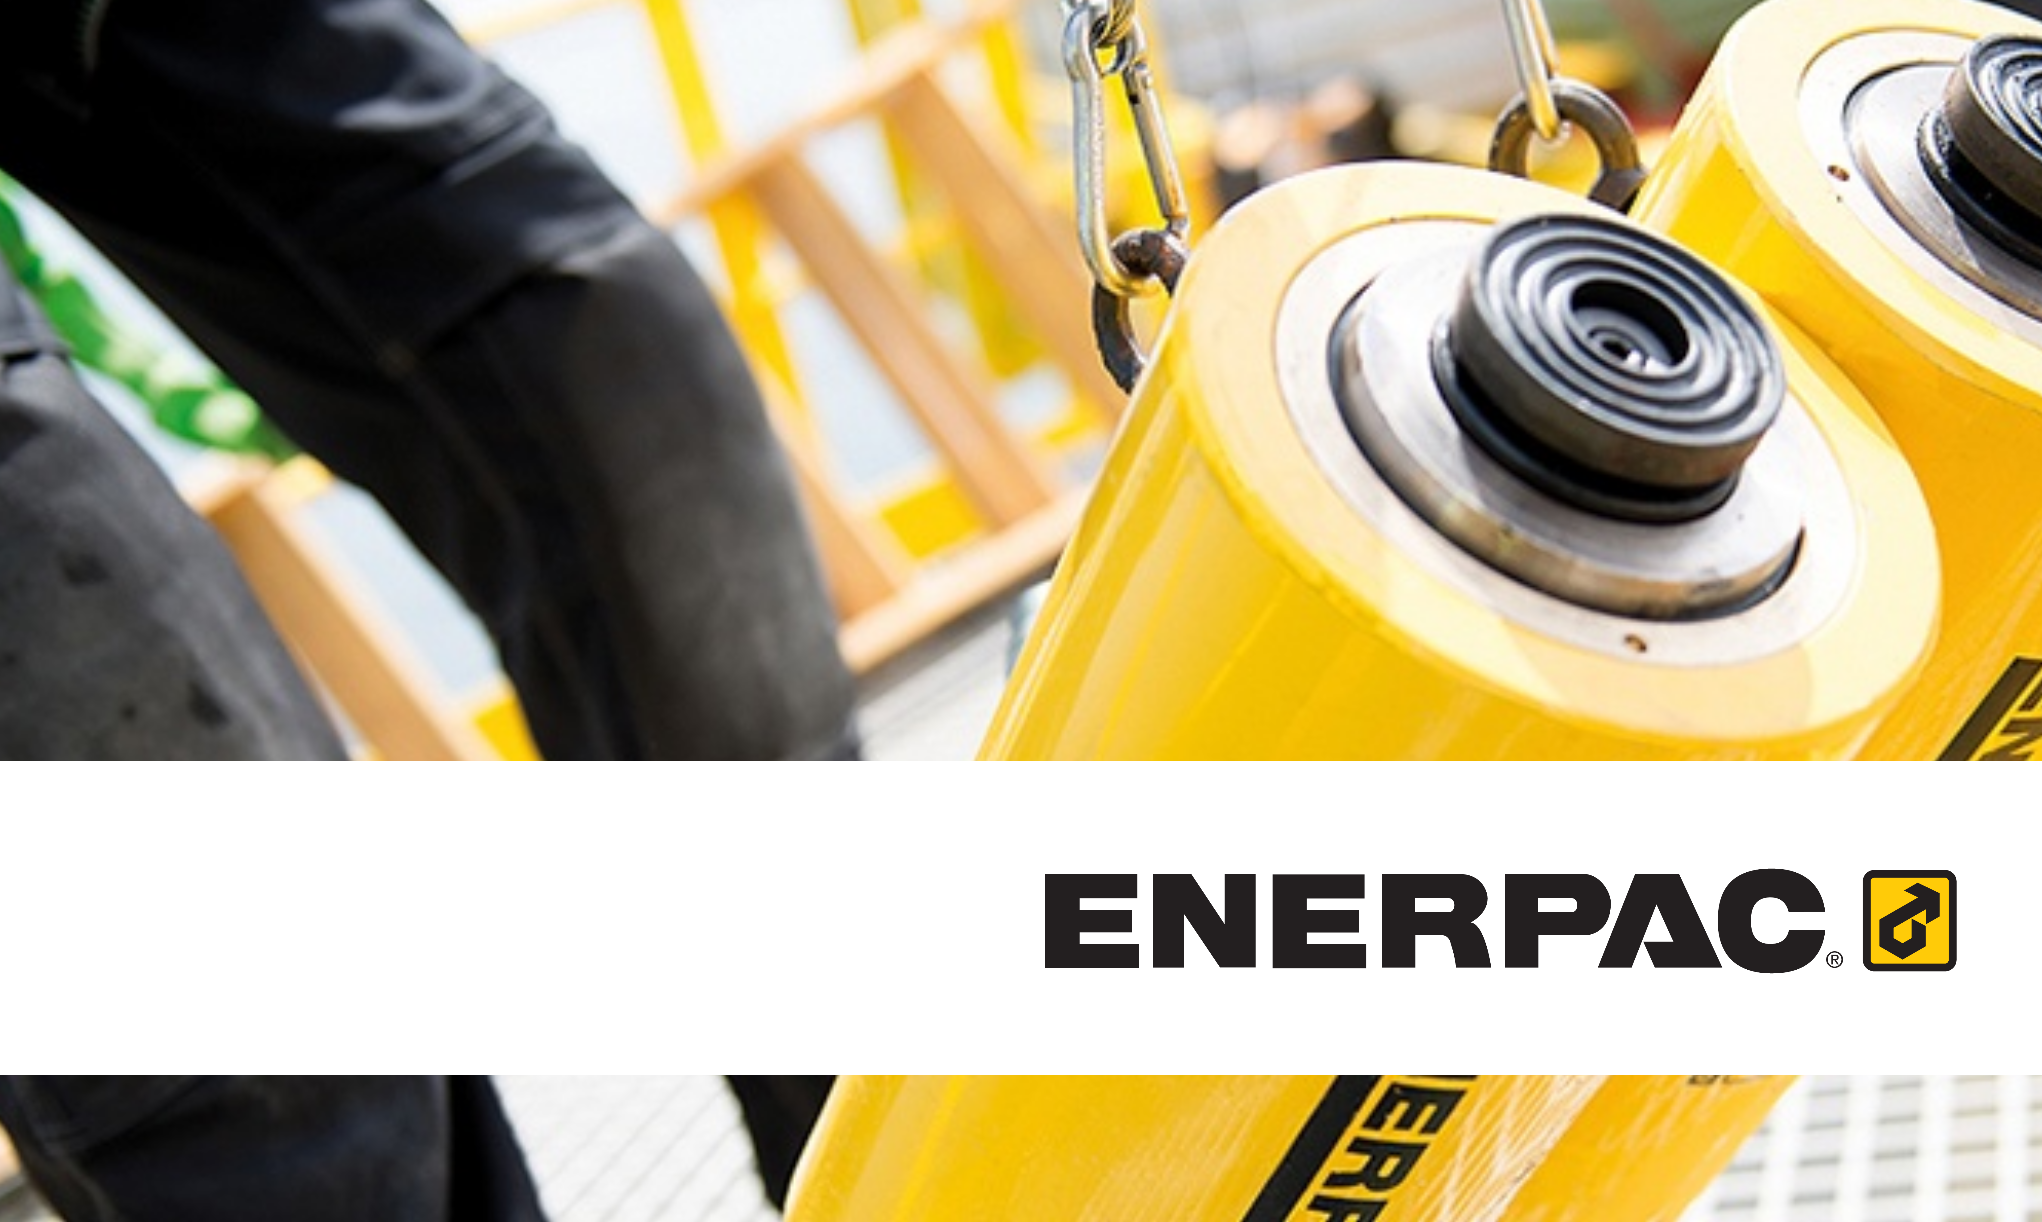 Enerpac Sub Page Image